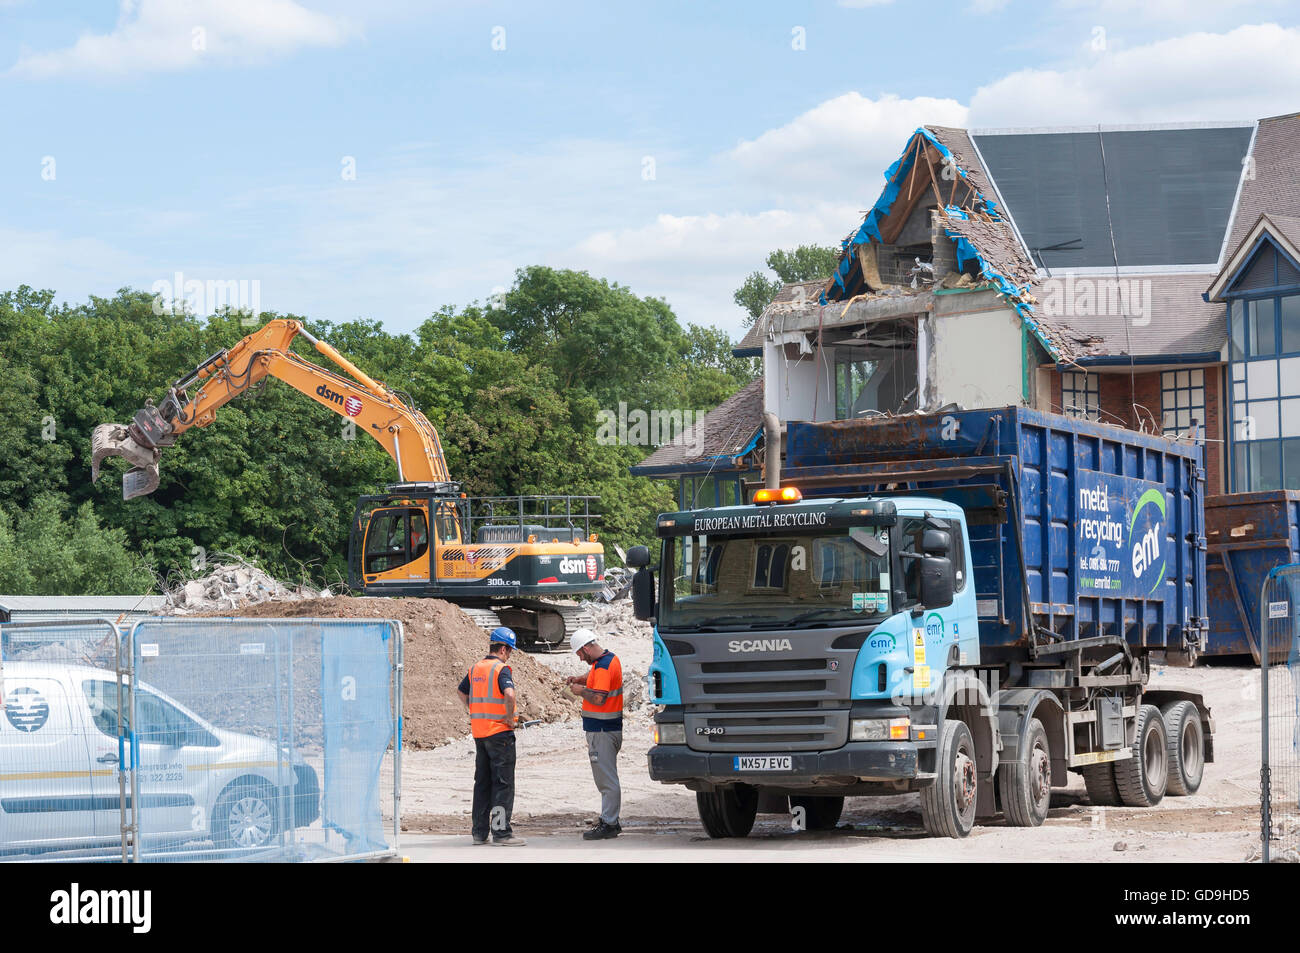 Building demolition, Swan Street,  Isleworth, London Borough of Hounslow, Greater London, England, United Kingdom - Stock Image